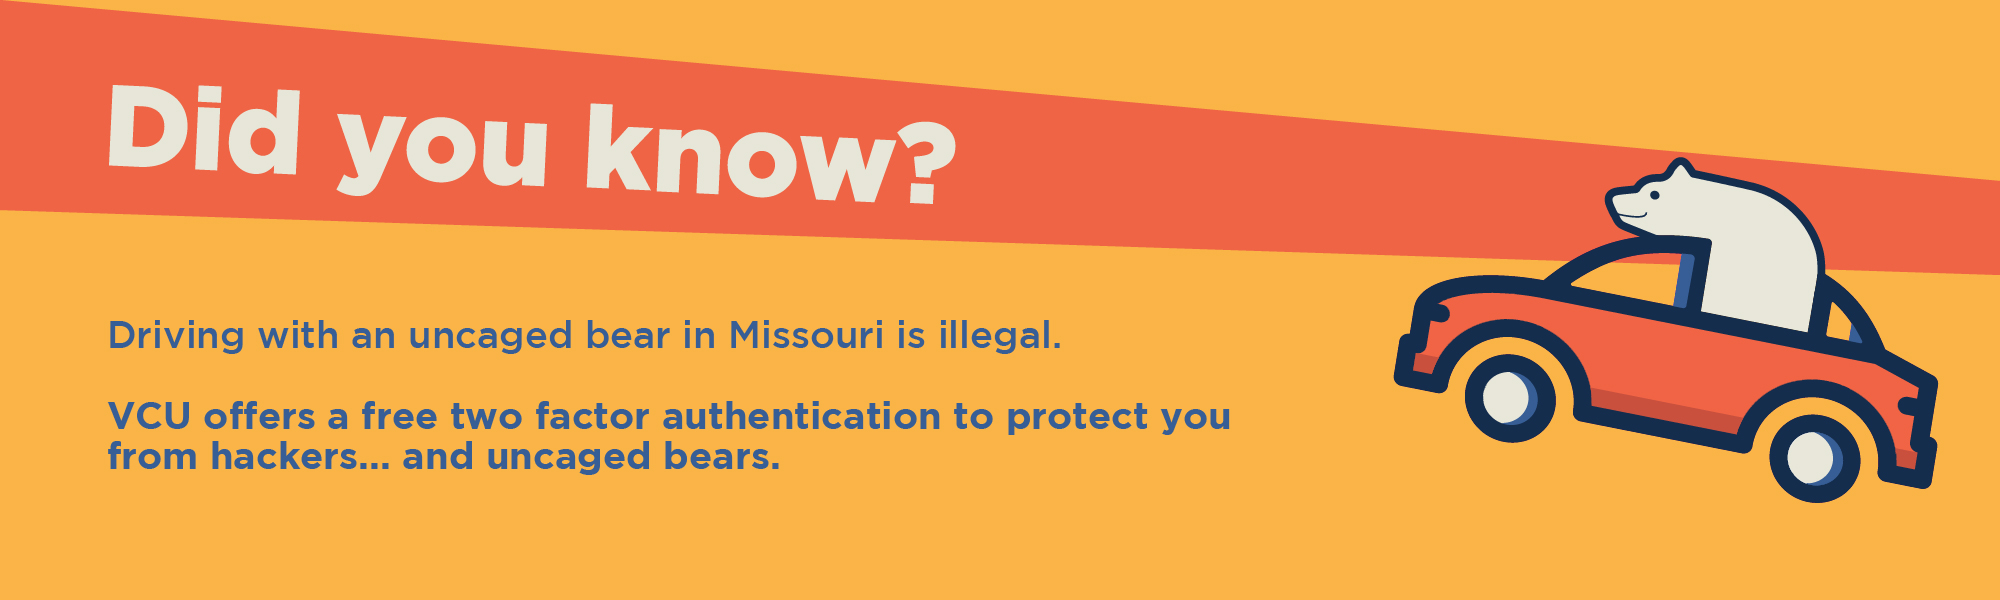 Did you know? Driving with an uncaged bear in Missouri is illegal. VCU offers a free two factor authenication to protect you from hackers... and uncaged bears.